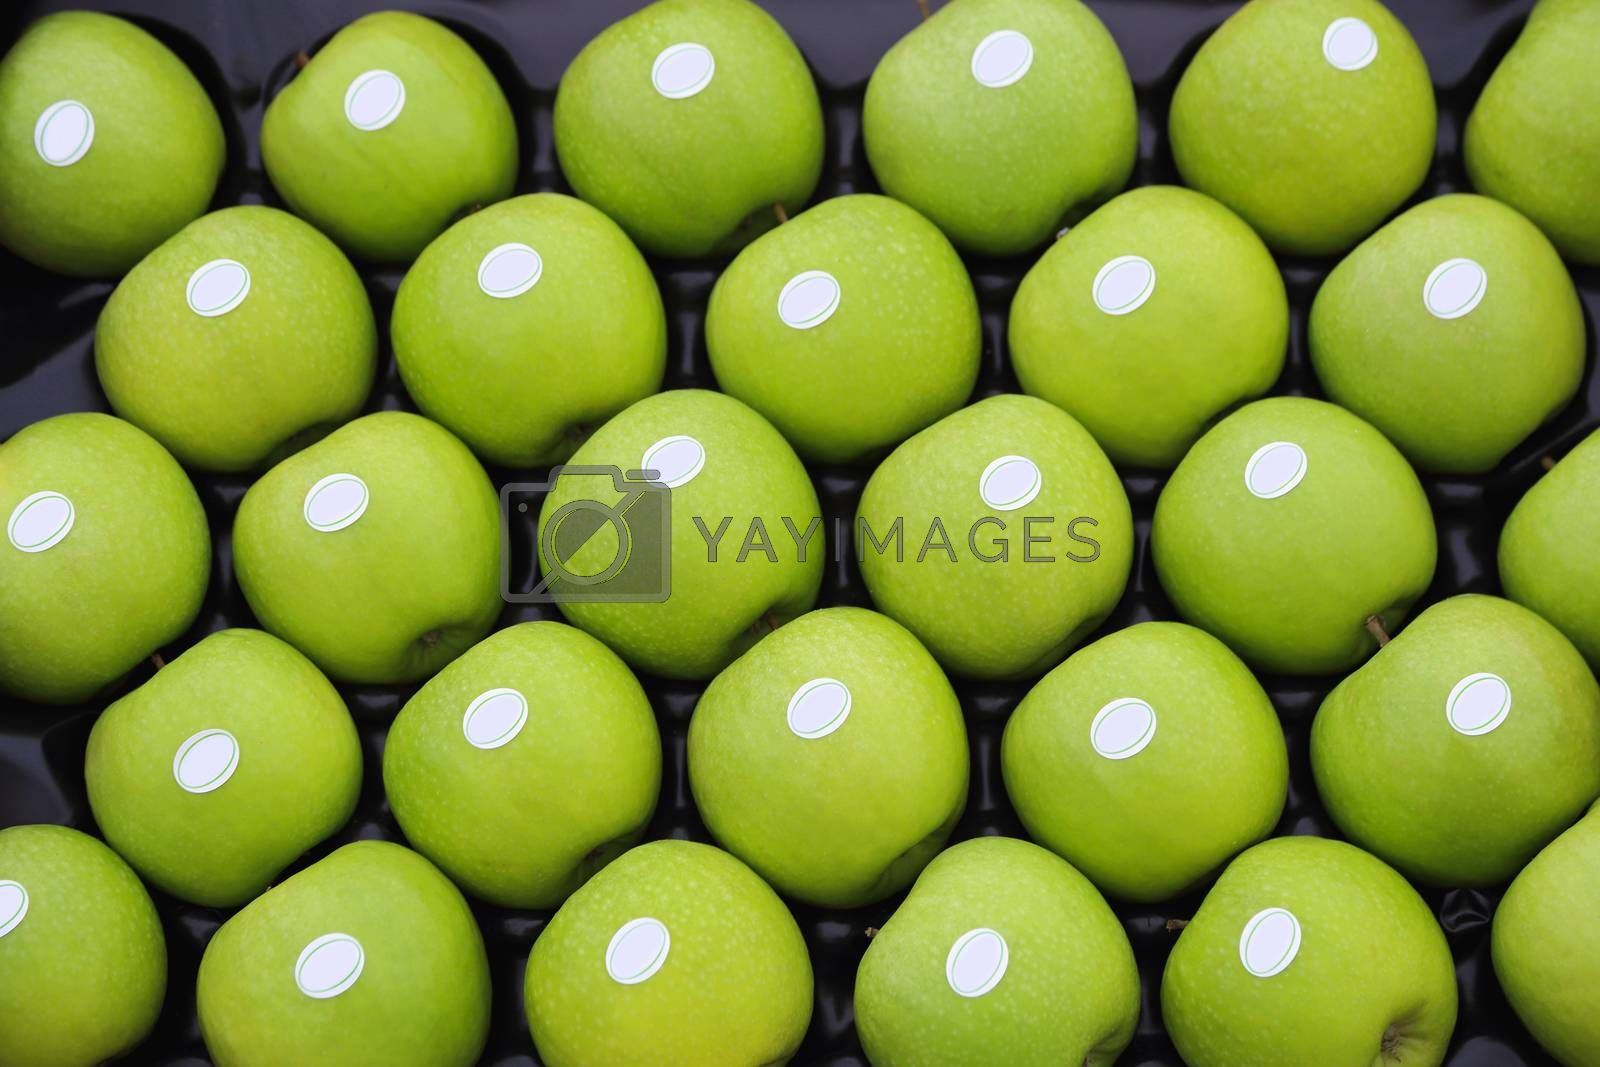 Royalty free image of Granny smith apples by Baloncici